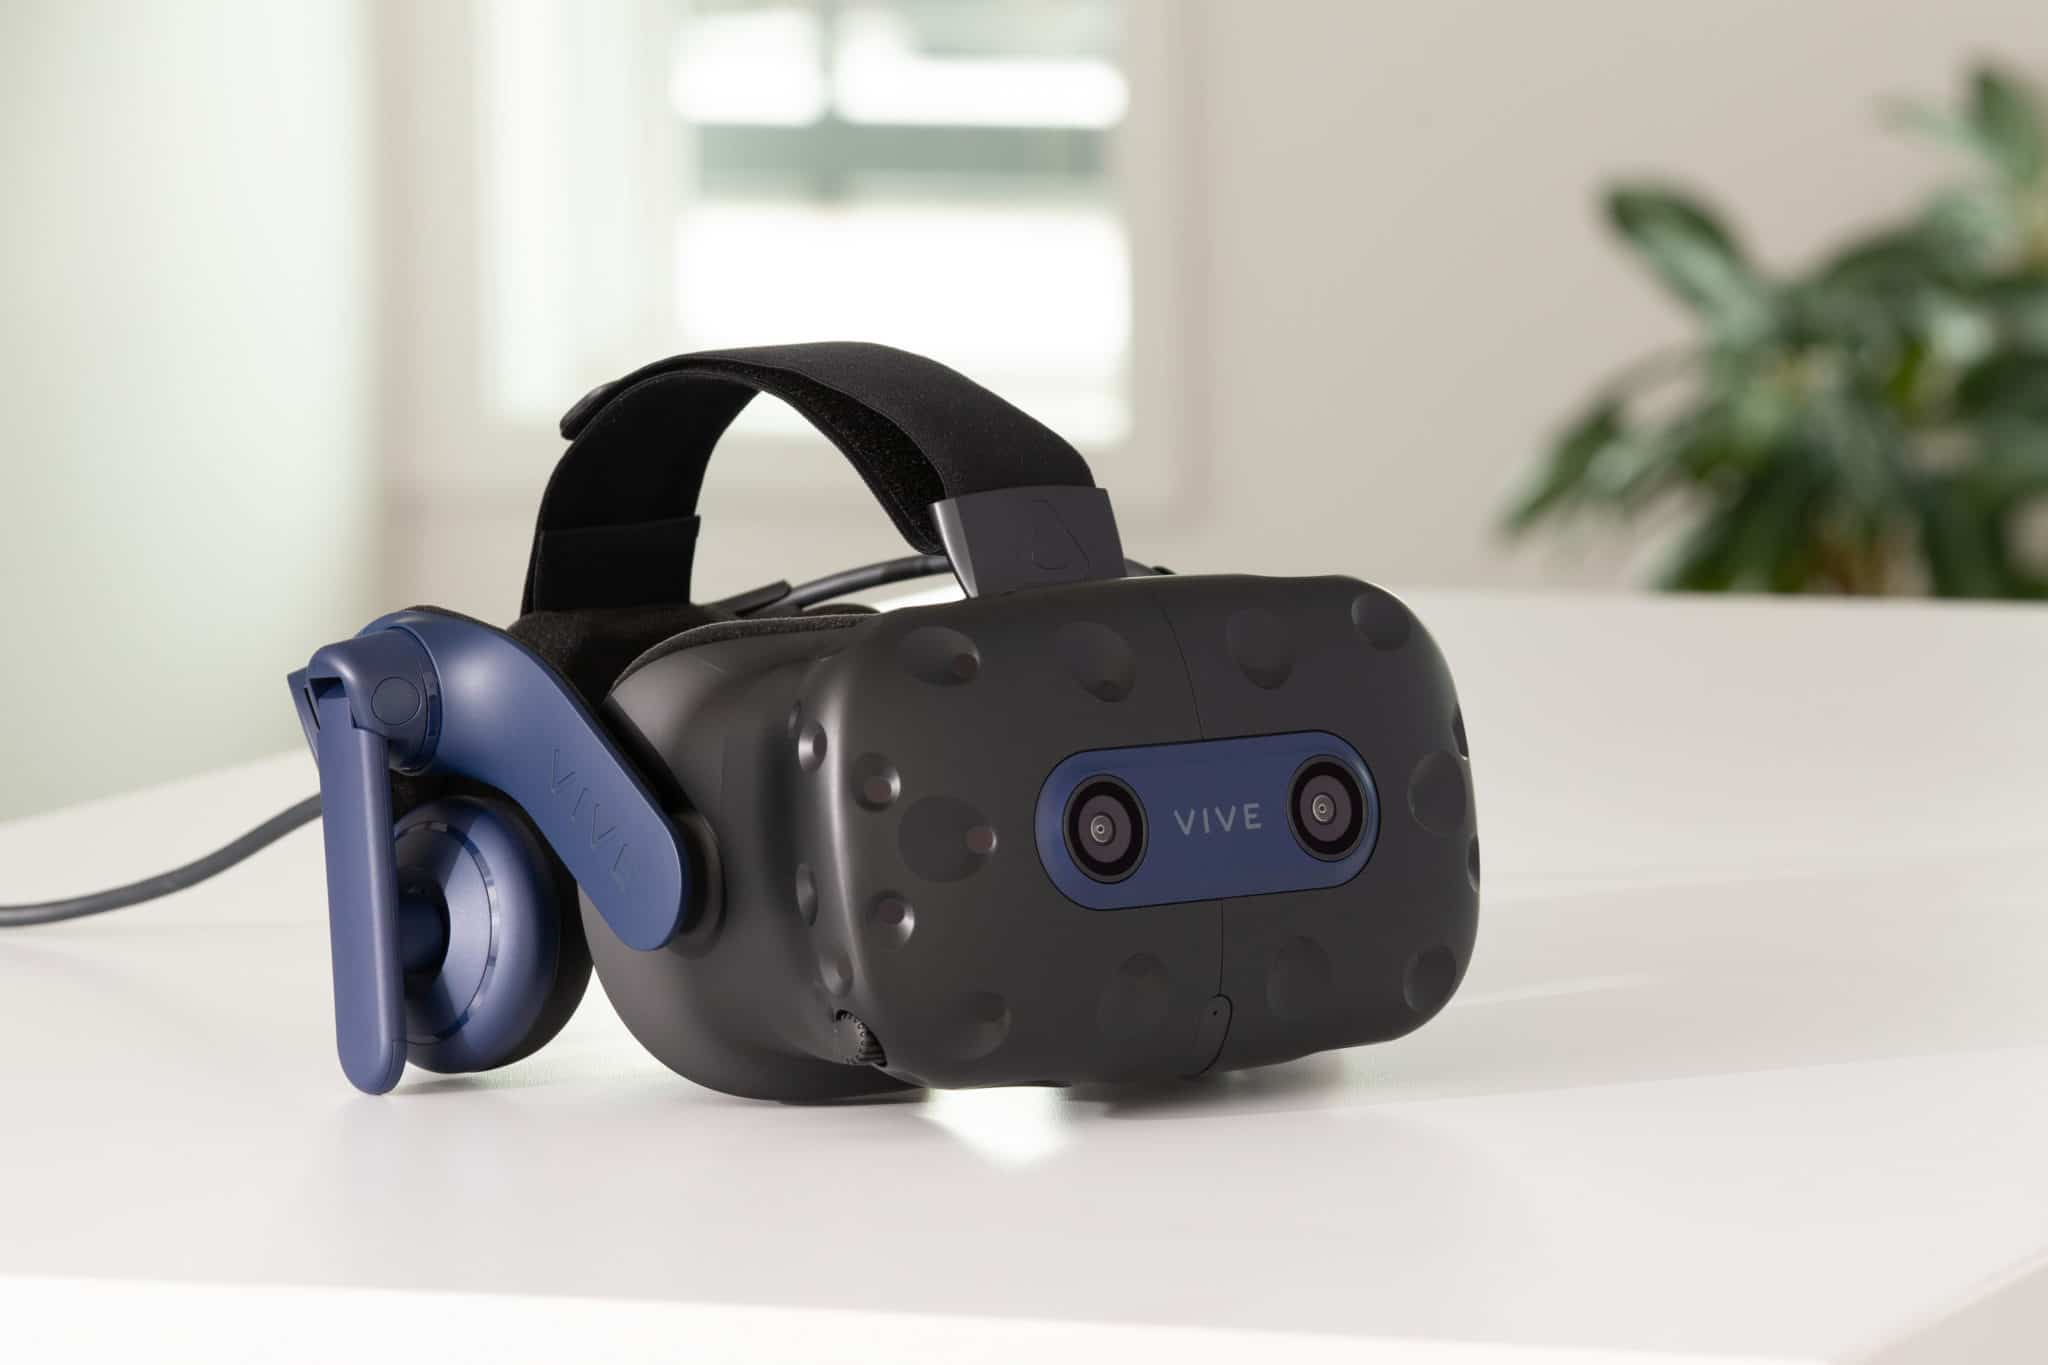 VIVE Pro 2 - on a table